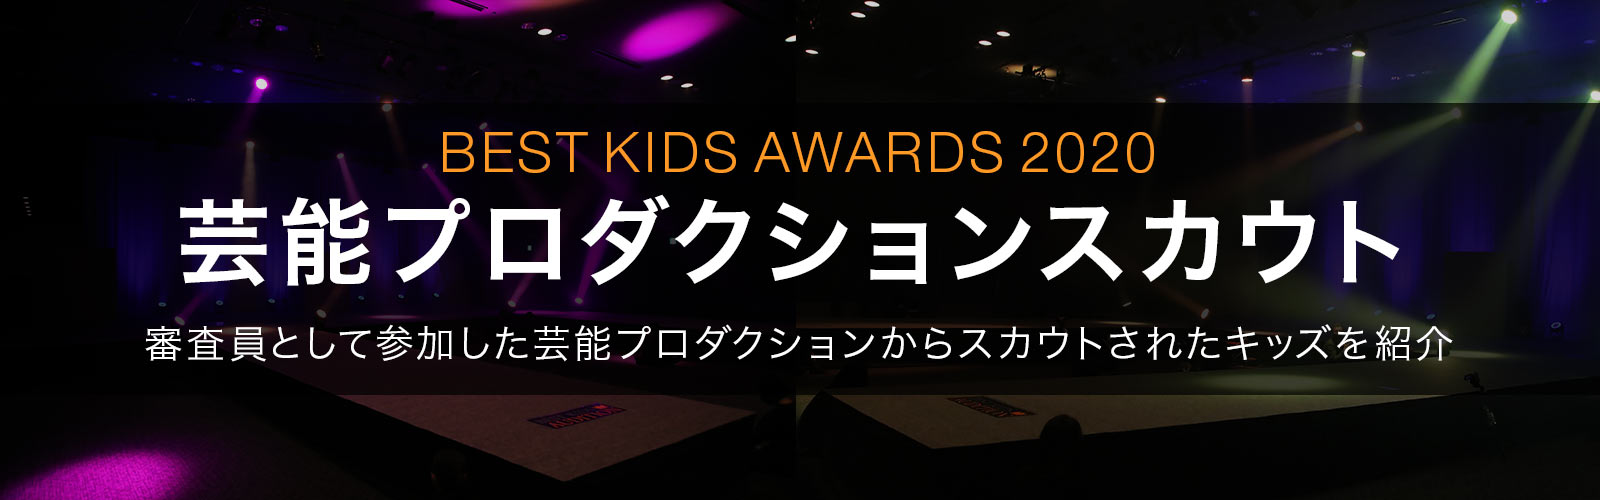 BEST KIDS AUDITION2020スカウト情報